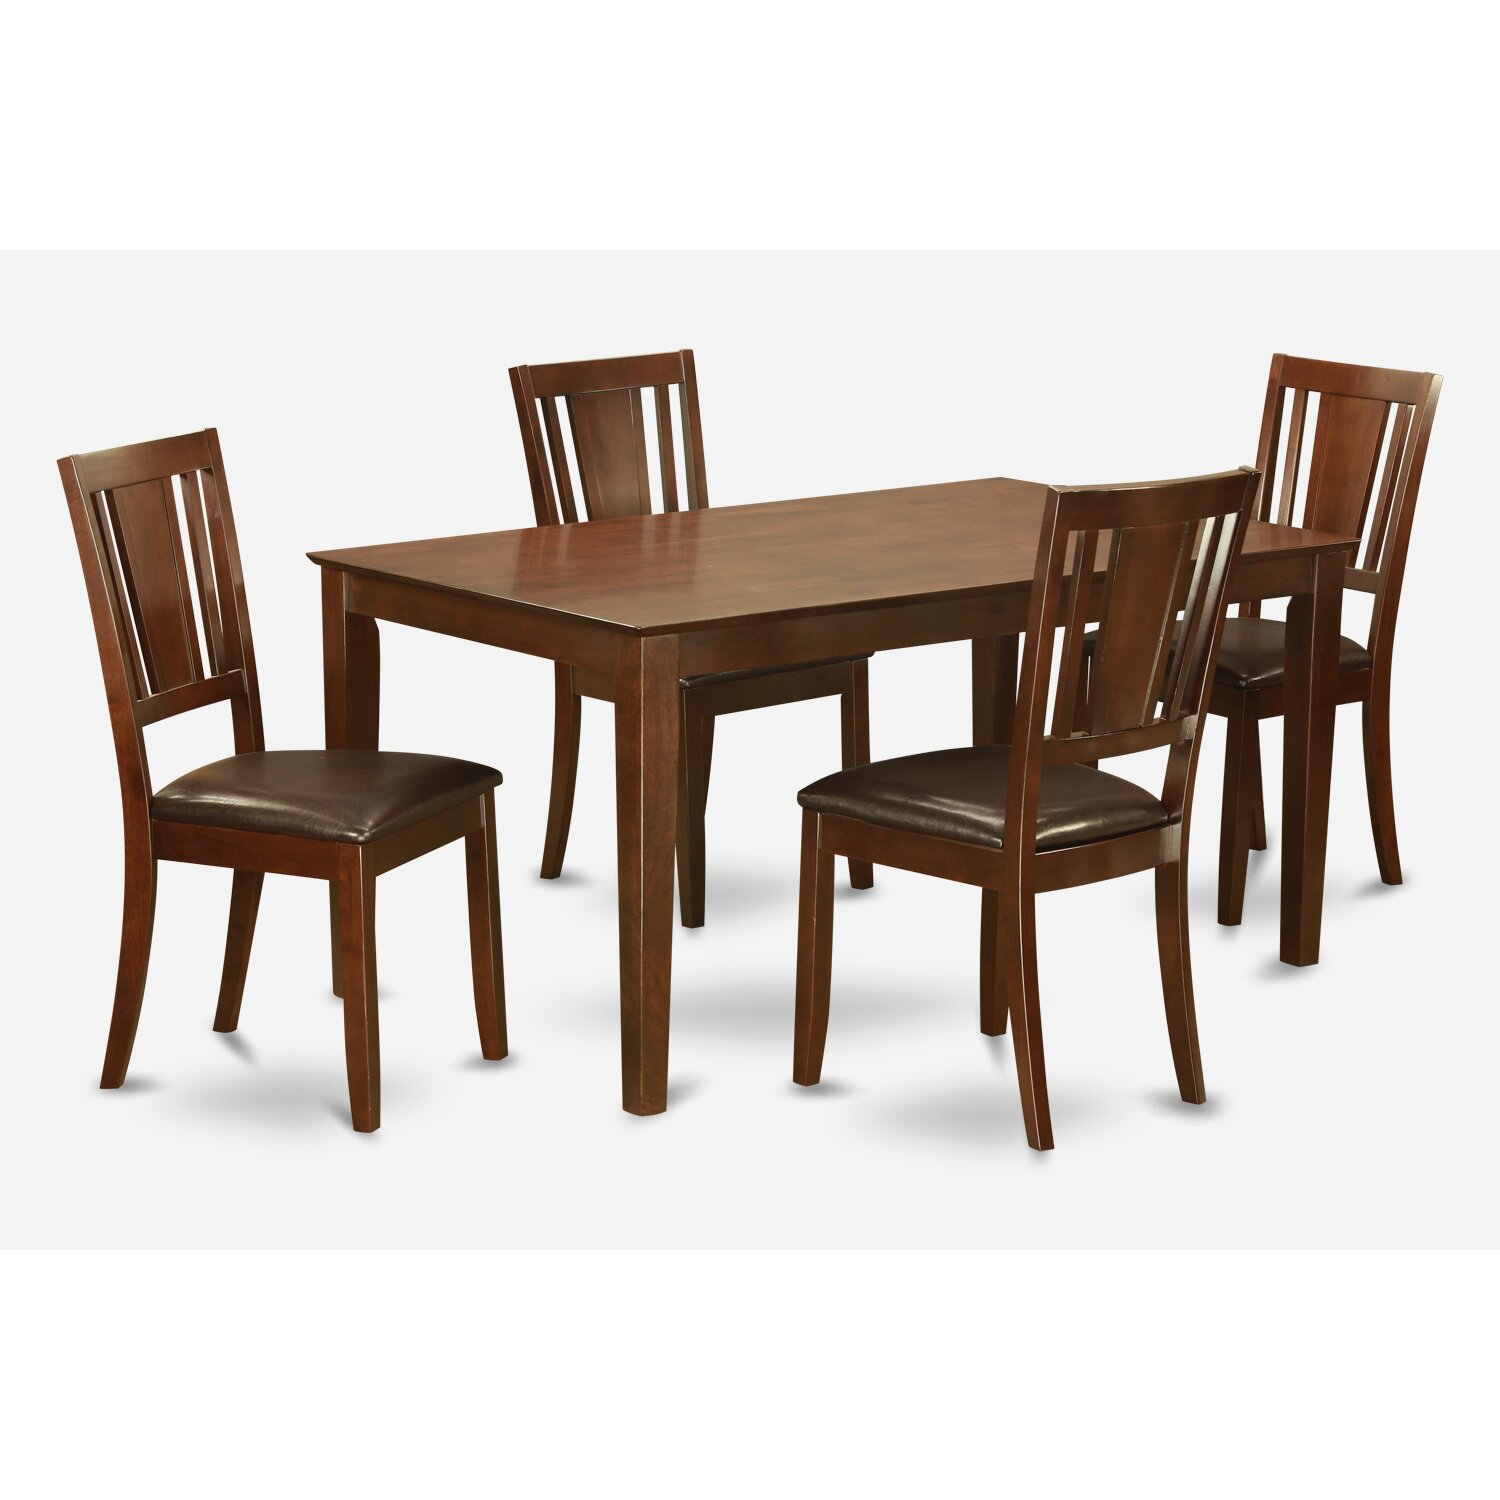 Wooden importers capri 5 piece dining set wayfair for 5 piece dining set